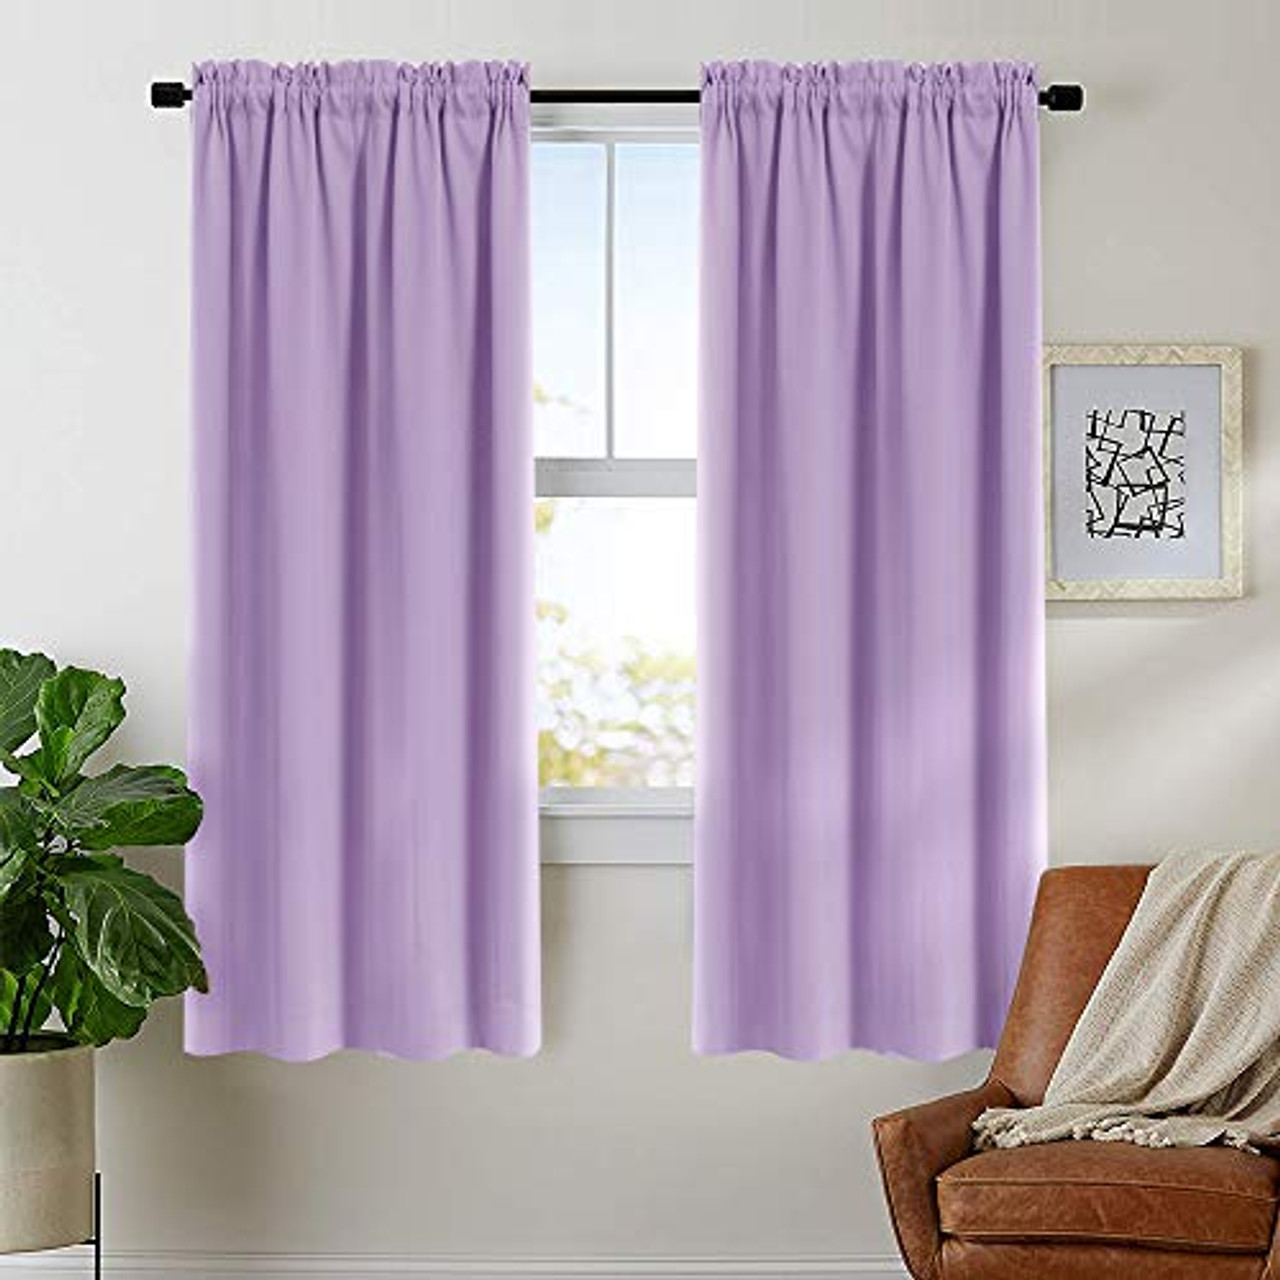 Lilac Curtains Living Room Darkening 72 Inches Long Moderate Lilacout Window Curtain Panels Bedroom Drapes Triple Weave Rod Pocket Window Curtains 2 Panels Toyboxtech